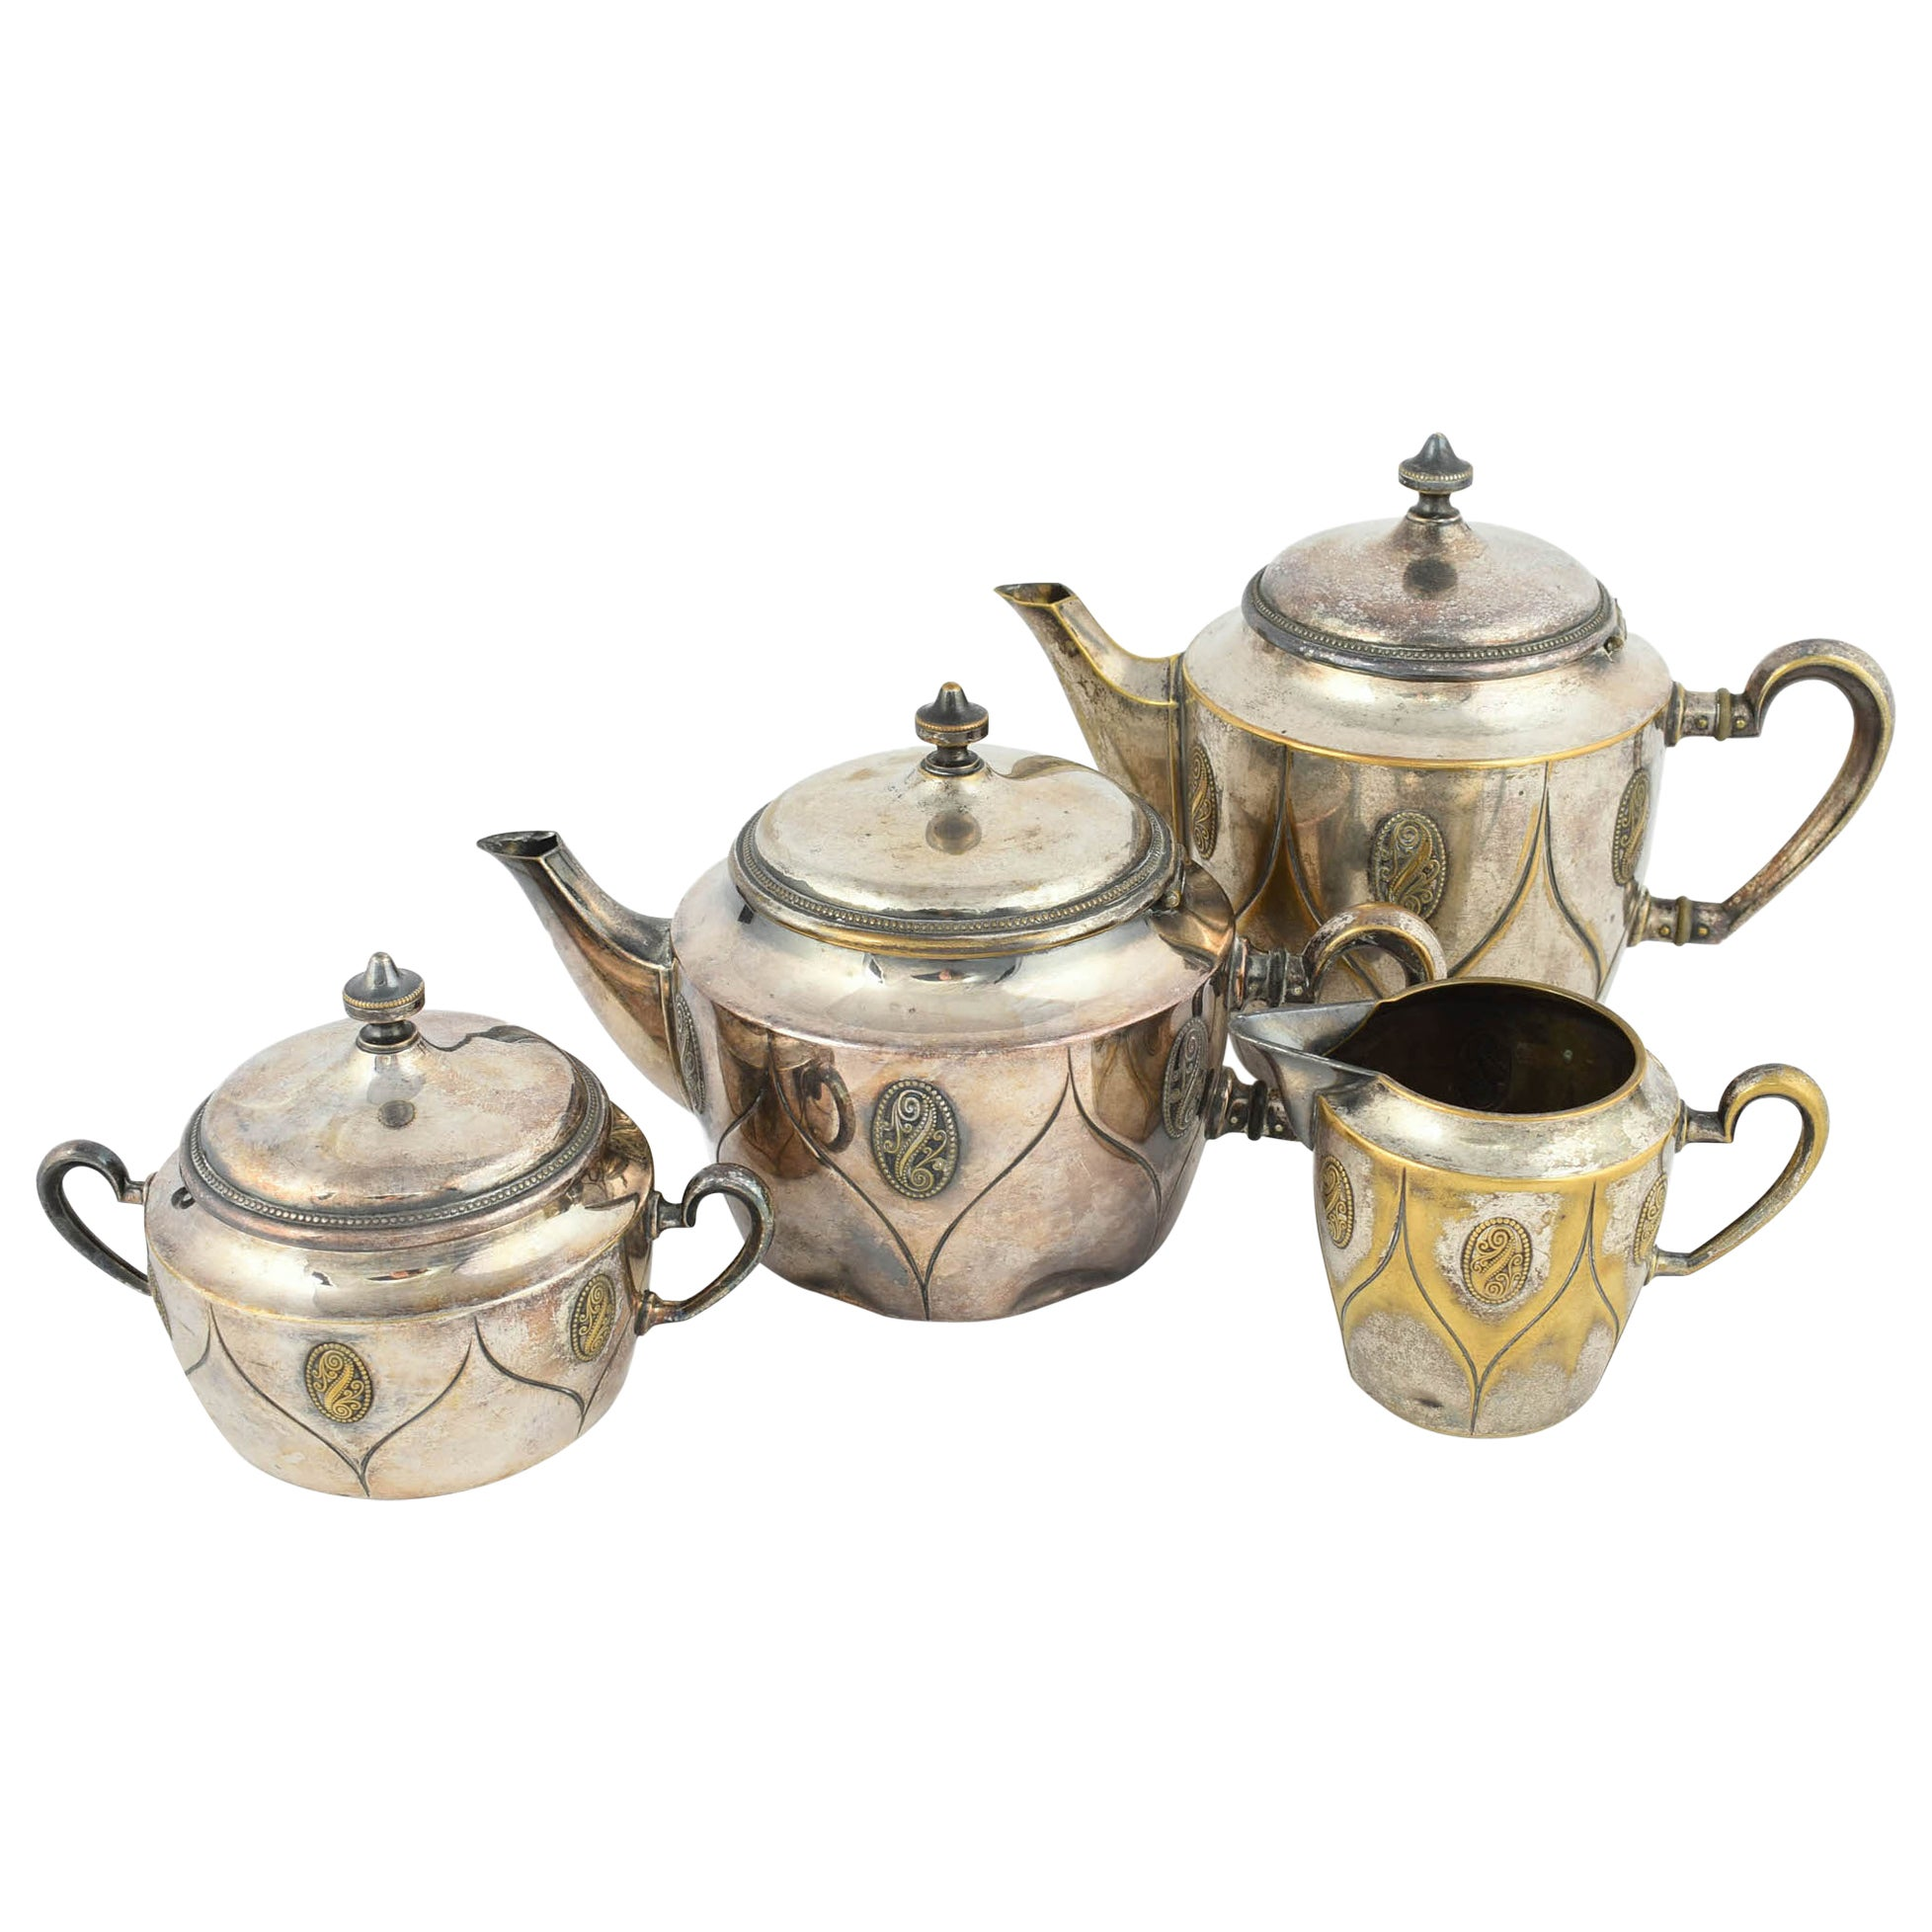 Vintage Silver Coffee and Tea Set by Wmf